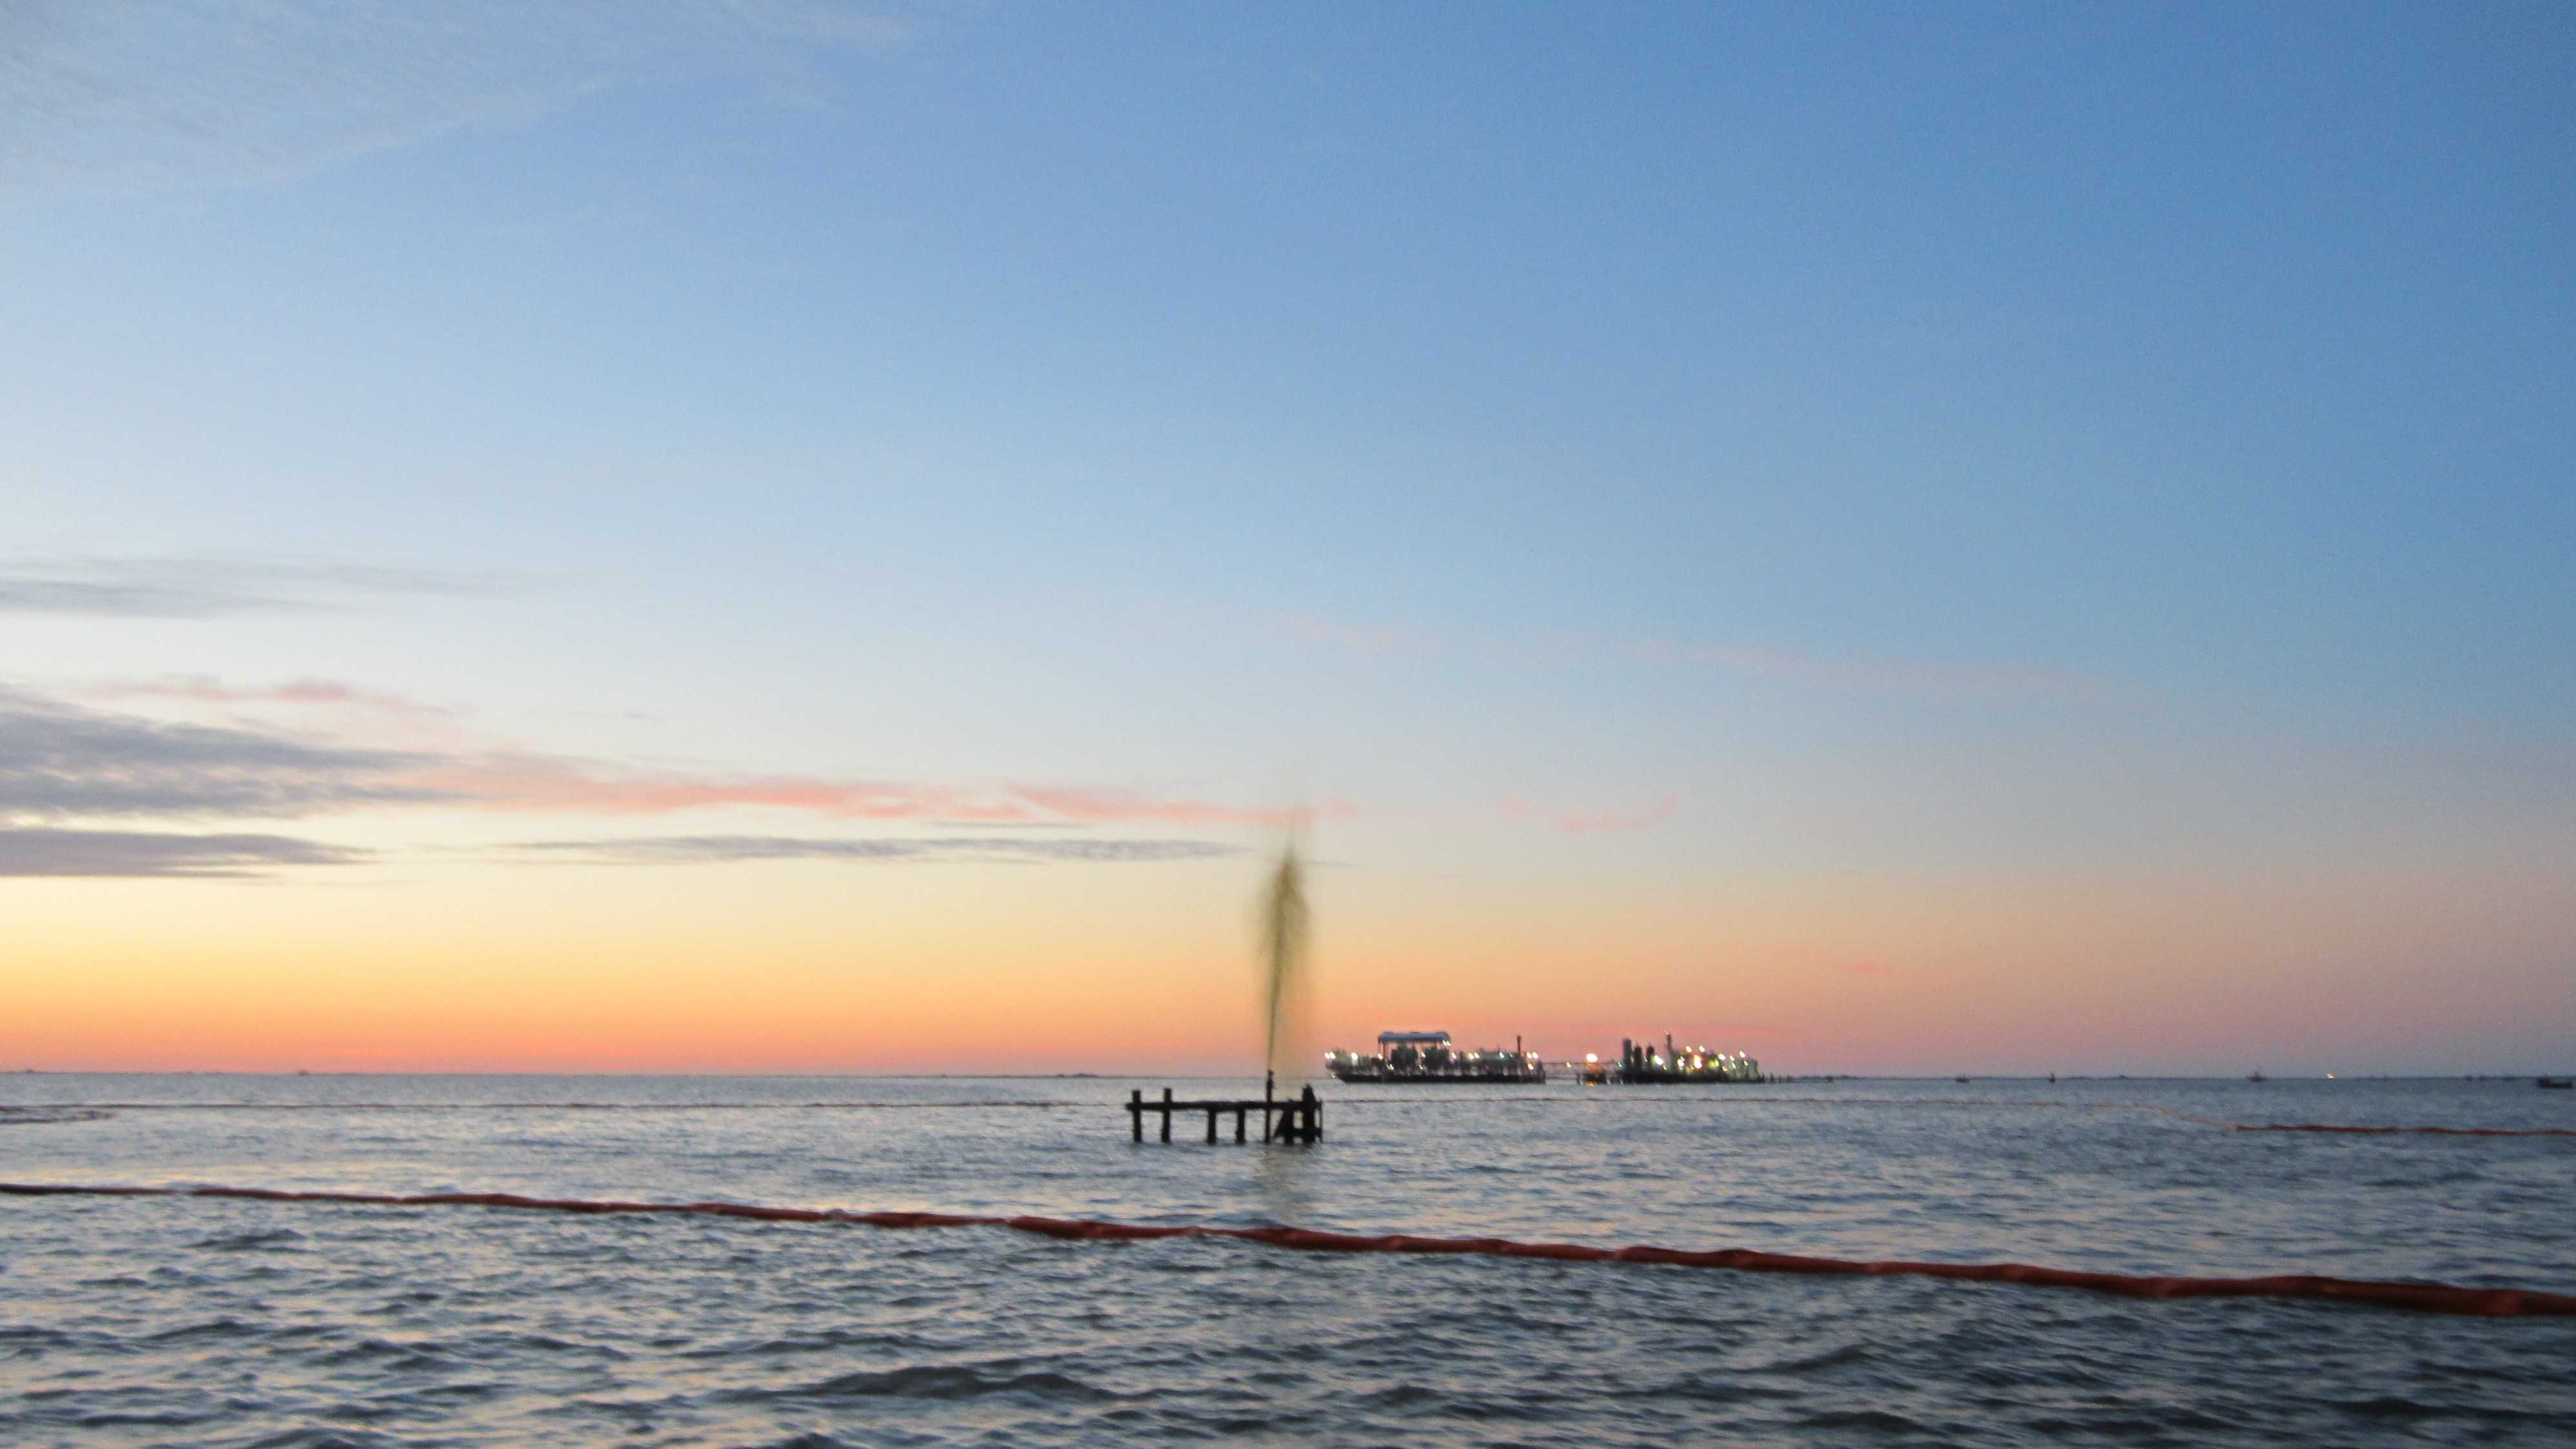 A wellhead was struck by a vessel near Port Sulphur Tuesday night, which caused an oily-water mixture to discharge into the water, the Coast Guard said.